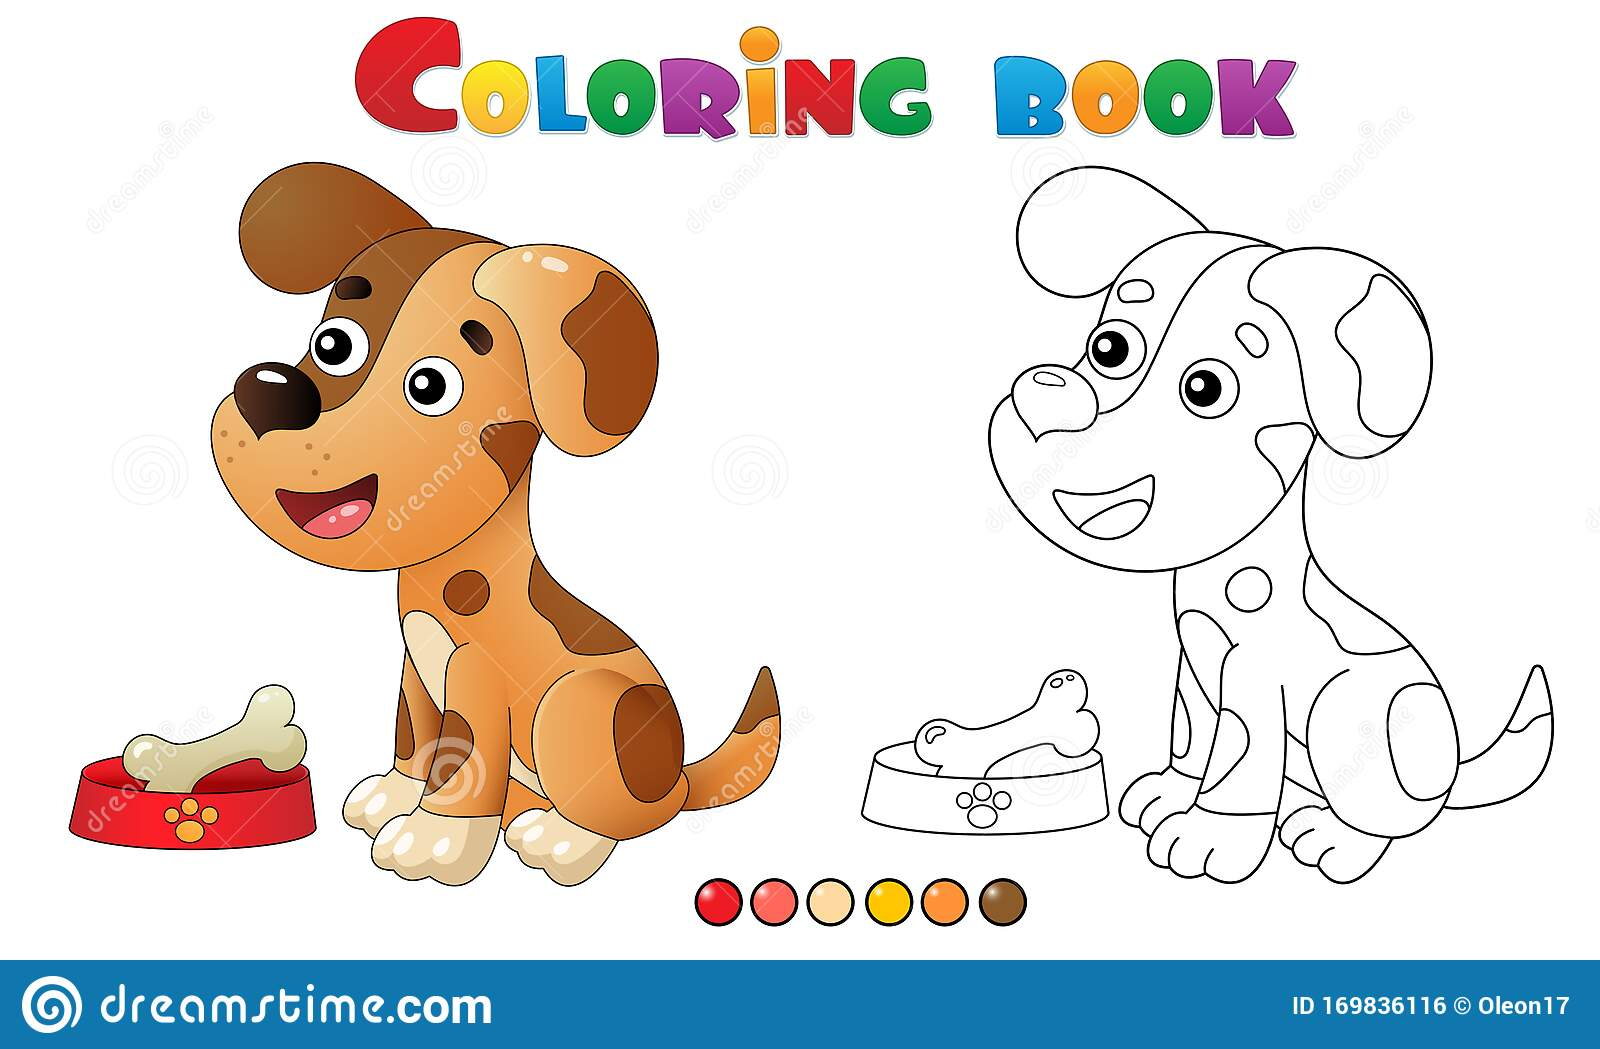 Coloring Page Outline Of Cartoon Dog With Bone Pets Coloring Book For Kids Stock Vector Illustration Of Book Colouring 169836116